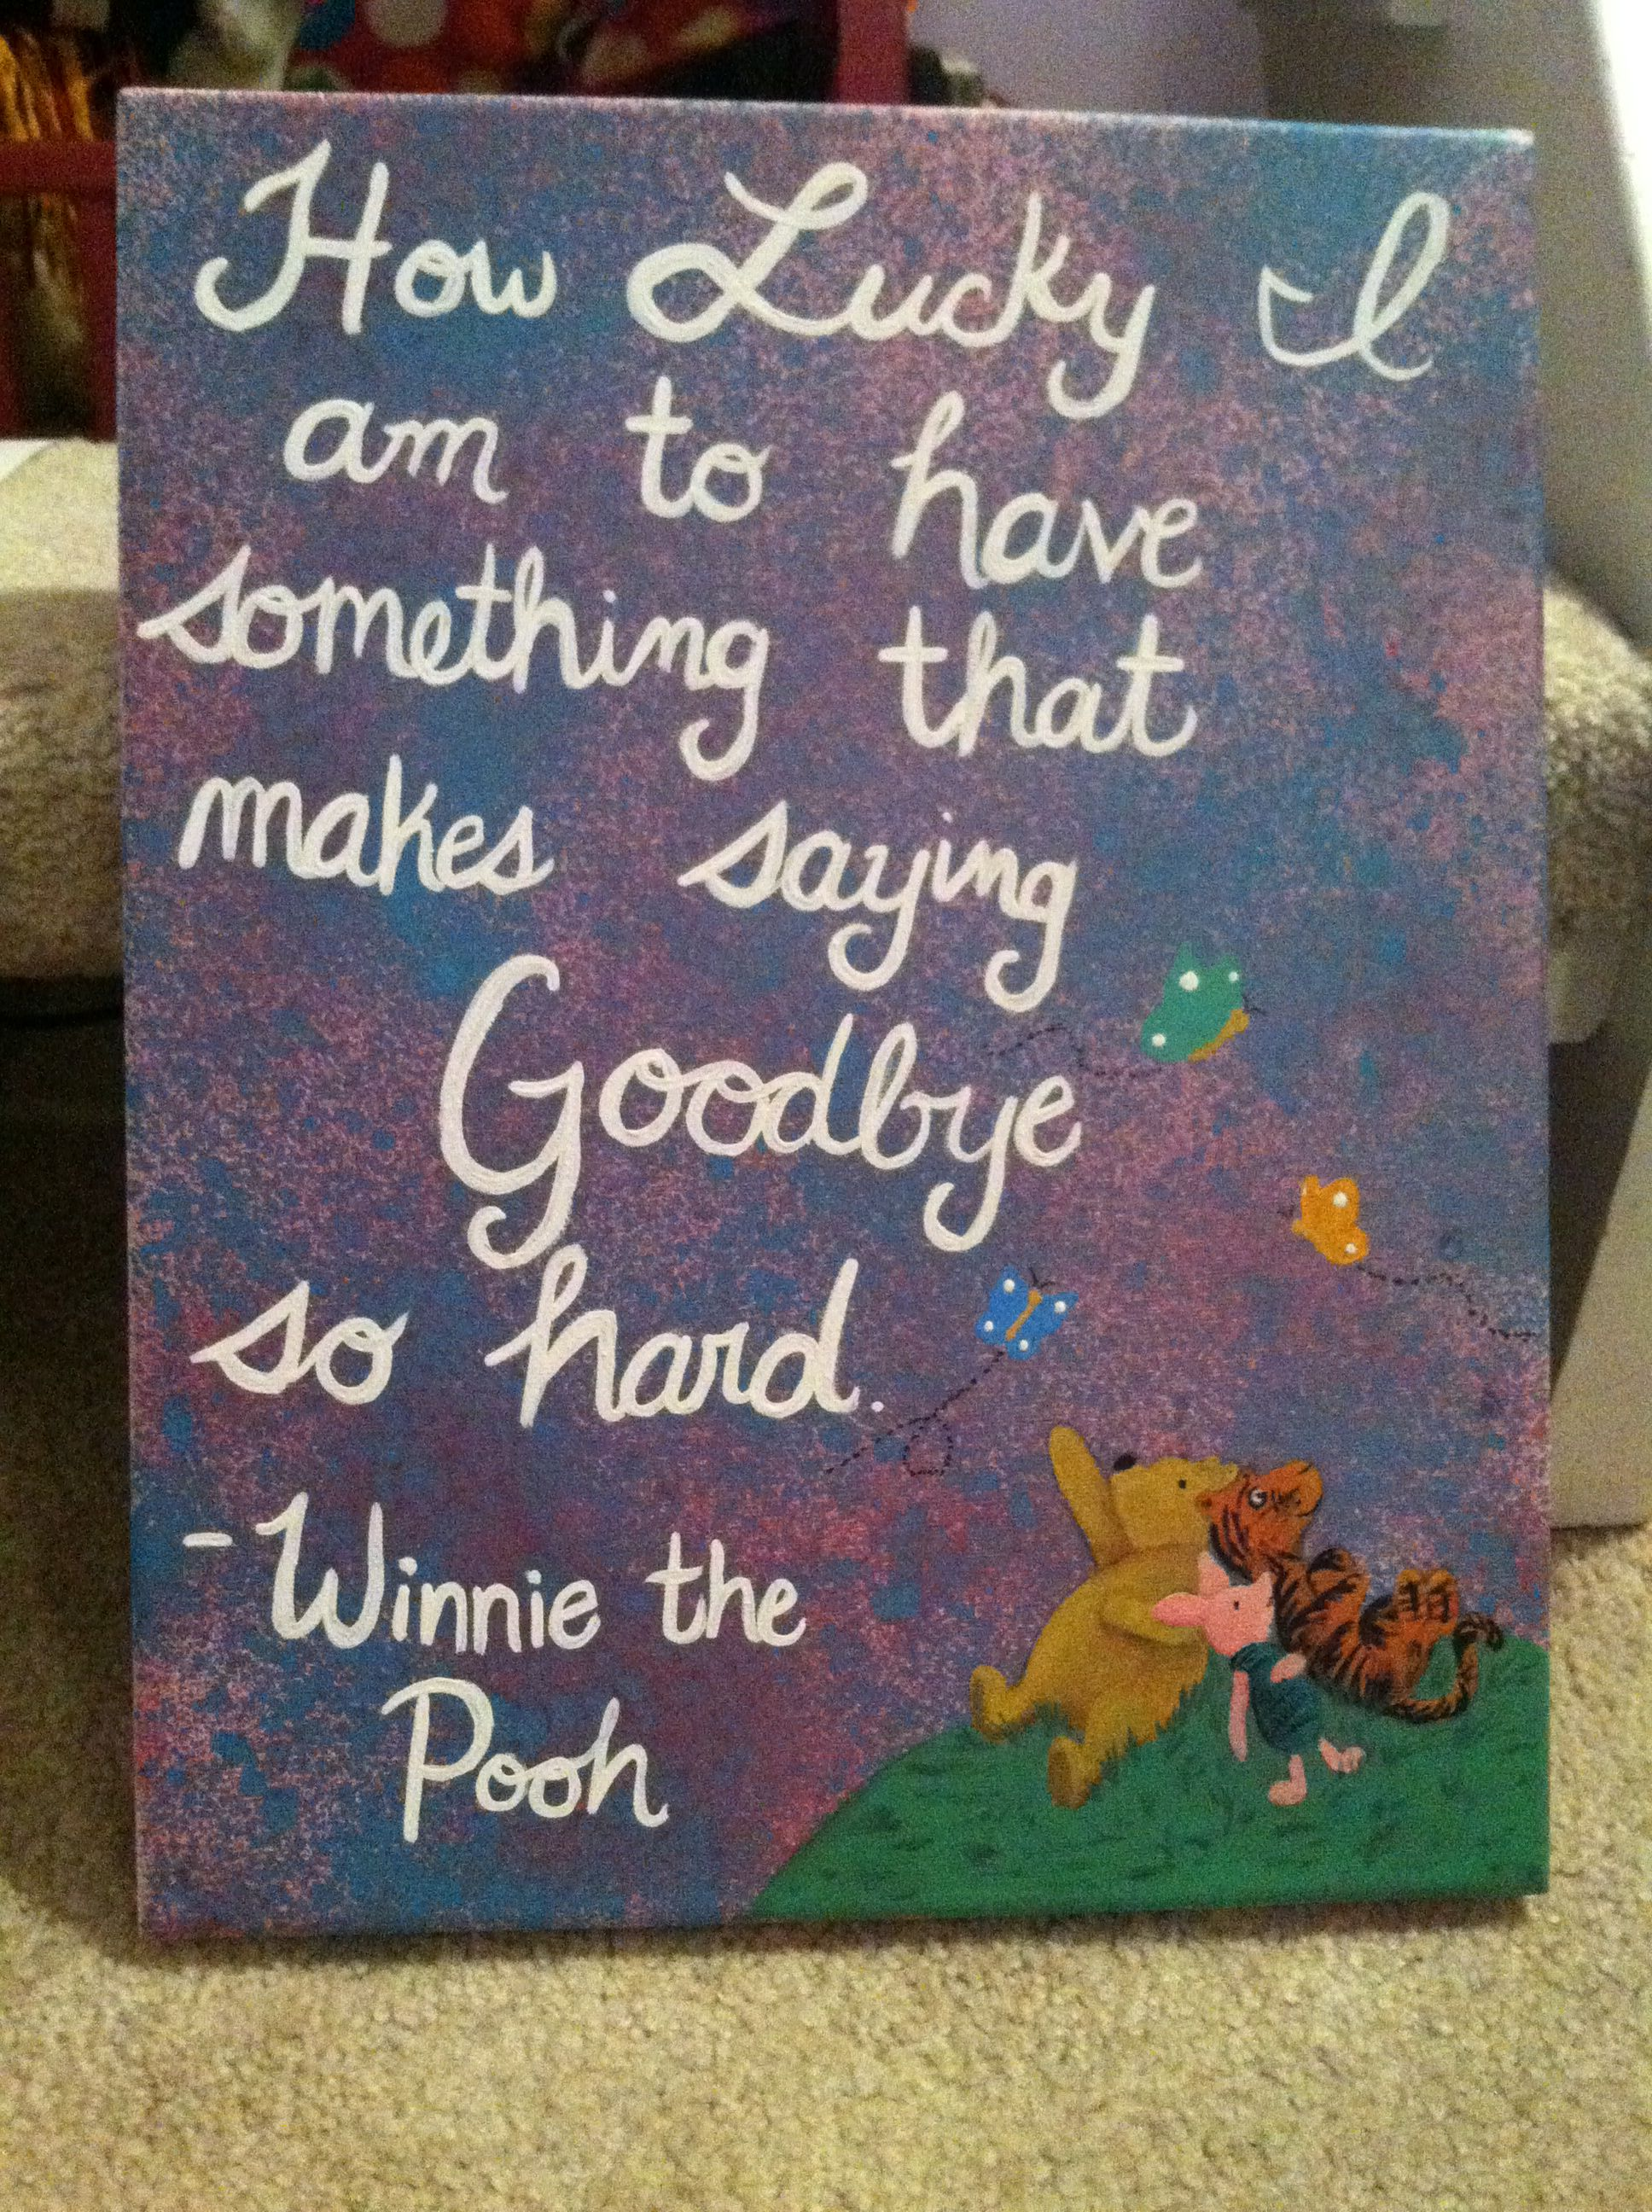 Classic pooh painting with Winnie the Pooh quote. The